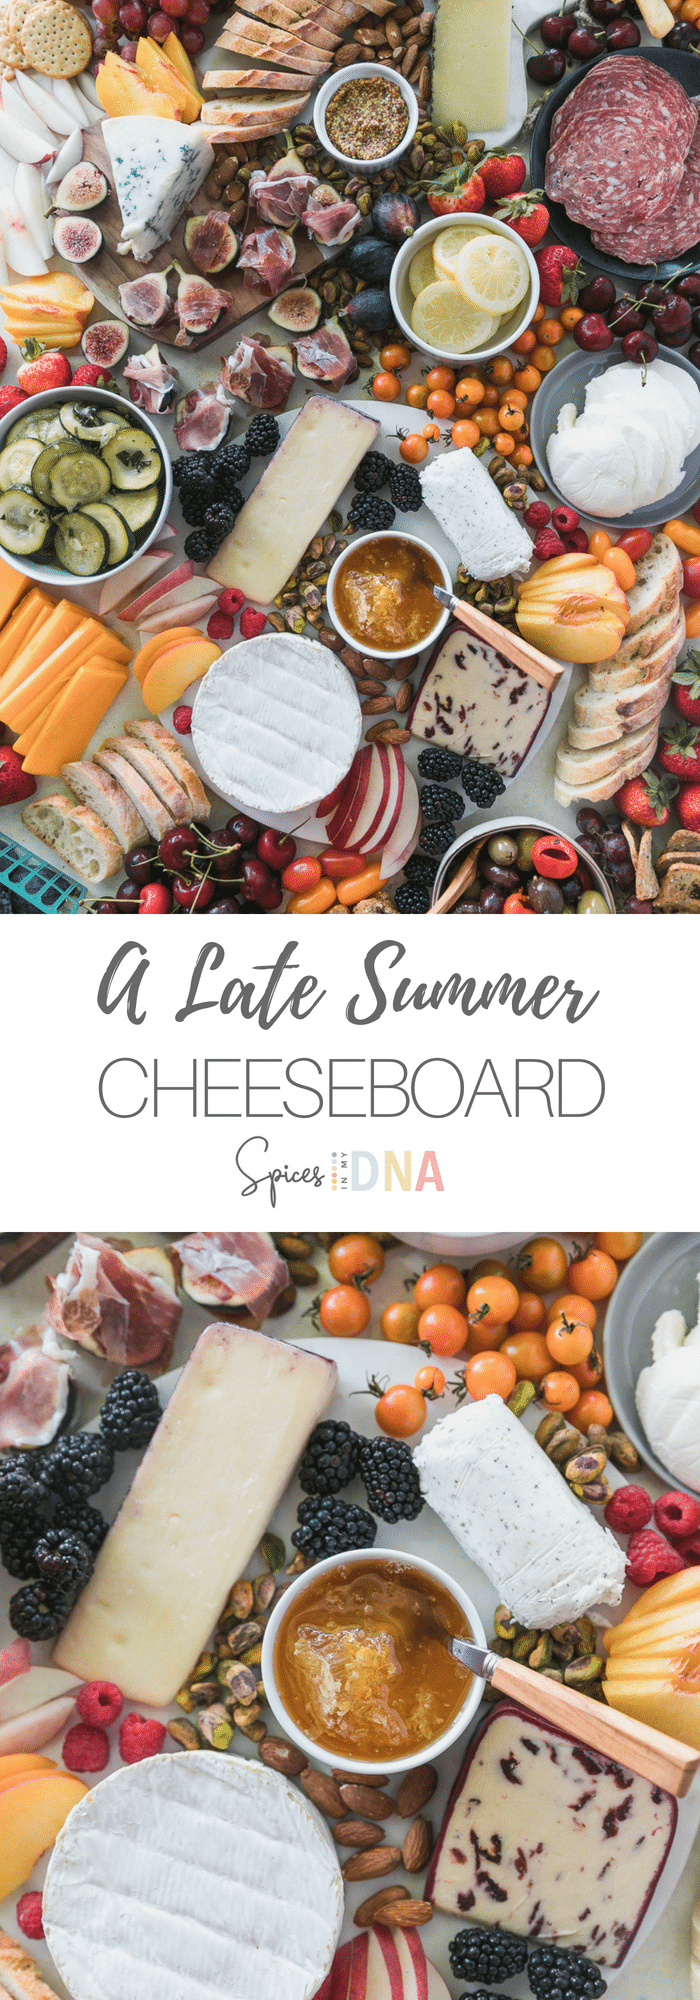 This Late Summer Cheeseboard is filled with some of my favorite end-of-summer treats! Fresh figs wrapped in prosciutto, marinated zucchini, berries, nectarines, peaches, preserved lemons, and an assortment of cheeses. I always add marinated olives, nuts, grapes, grainy mustard, honey, crackers, breadsticks, and sliced baguette too! Feel free to get creative with what you love - they are SO much fun to put together! #cheeseboard #summer #appetizer #entertaining